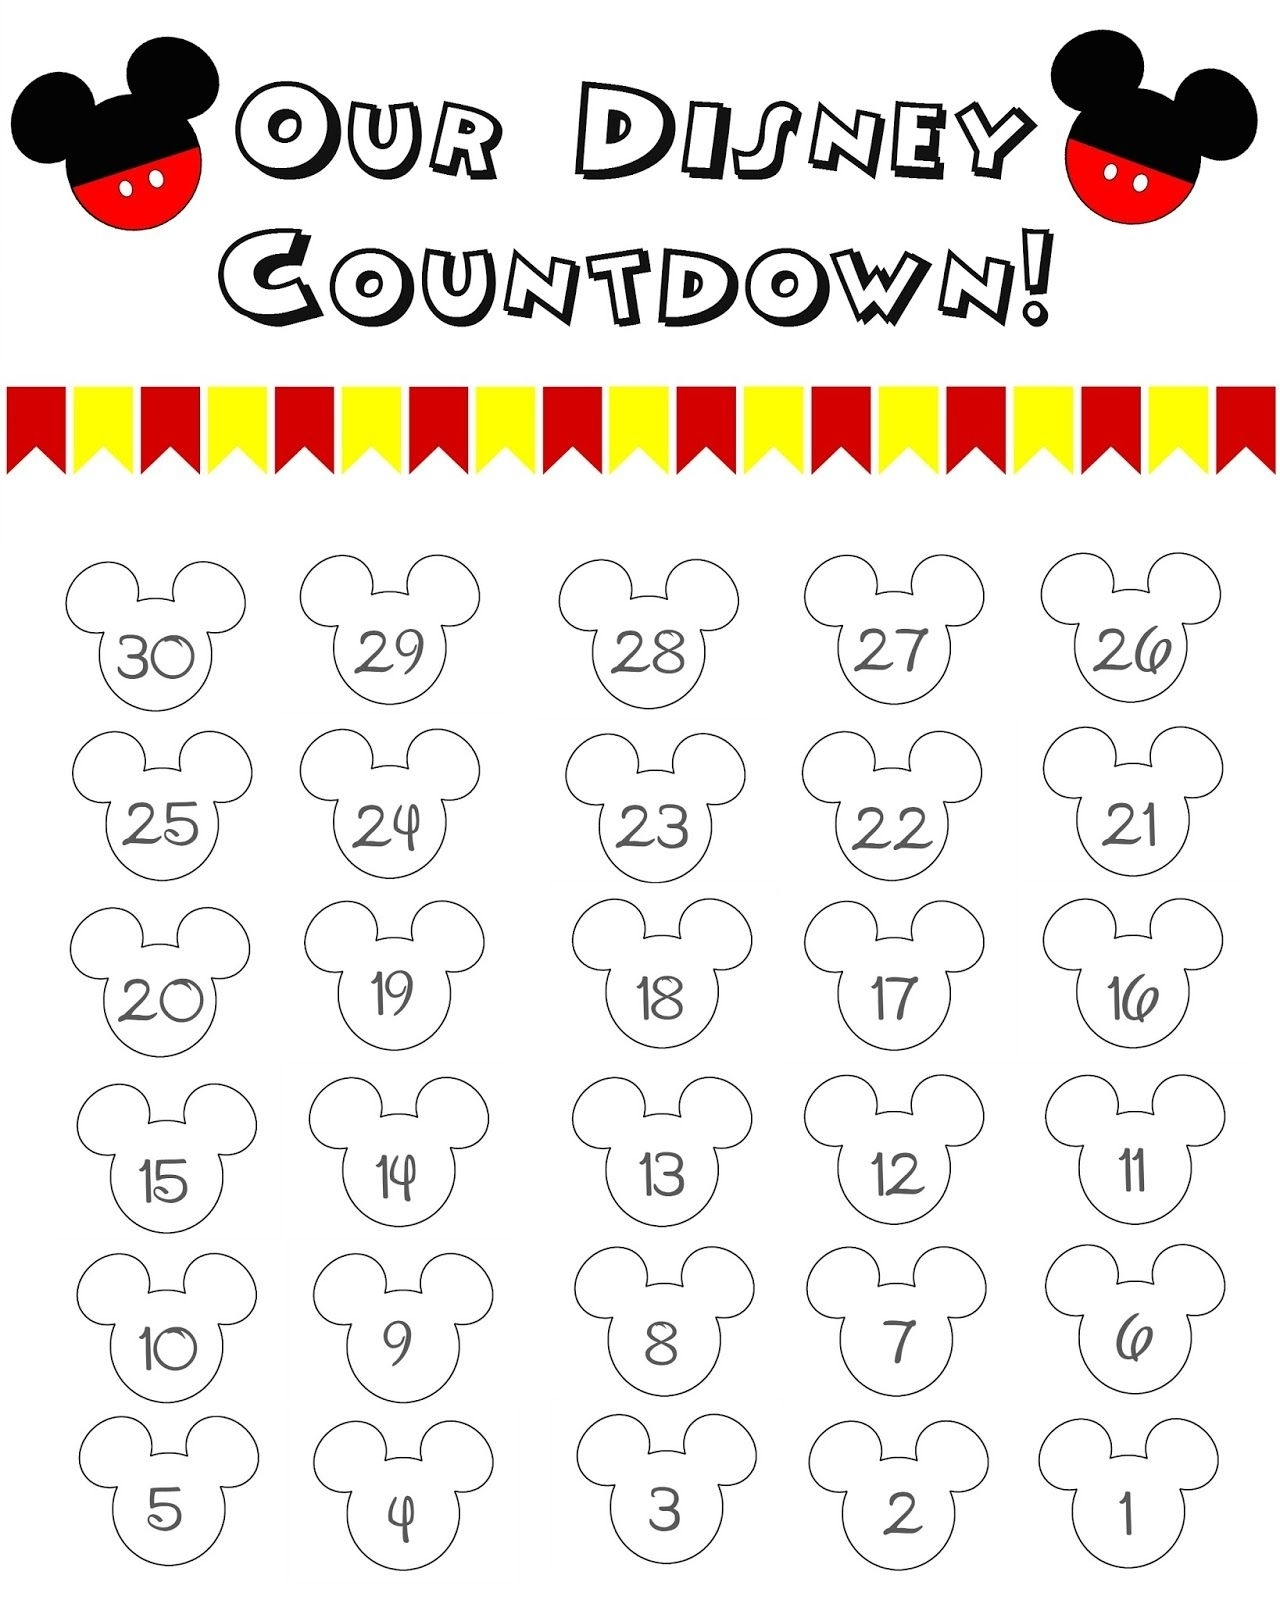 Disney World Countdown Calendar - Free Printable | The Momma Diaries with Disney Free Printable Monthly Calendar